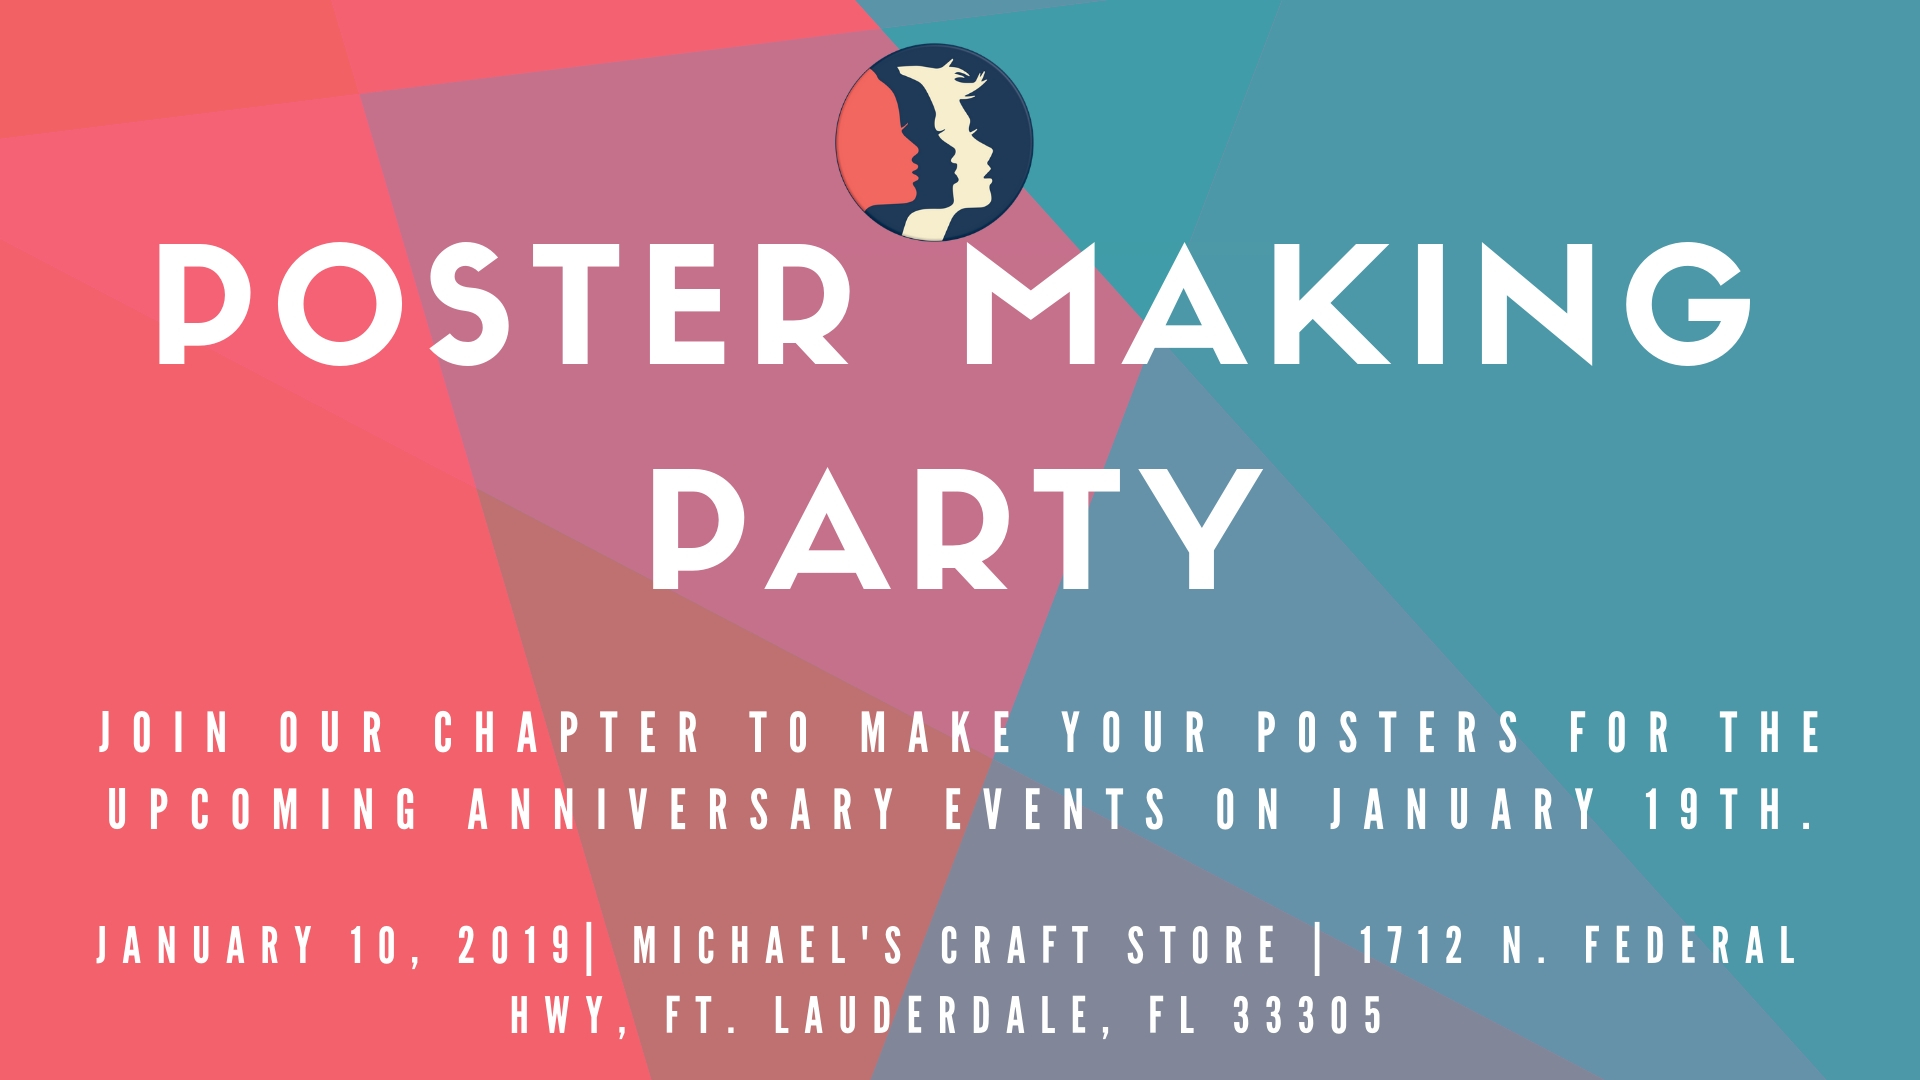 1-10-19: Poster Making Party - Join us to make posters for the upcoming Anniversary Events for the Women's March. We will have poster board and markers available while supplies last. Please bring any foam board or other craft goodies that you might need. Everyone is welcome!We look forward to seeing you!